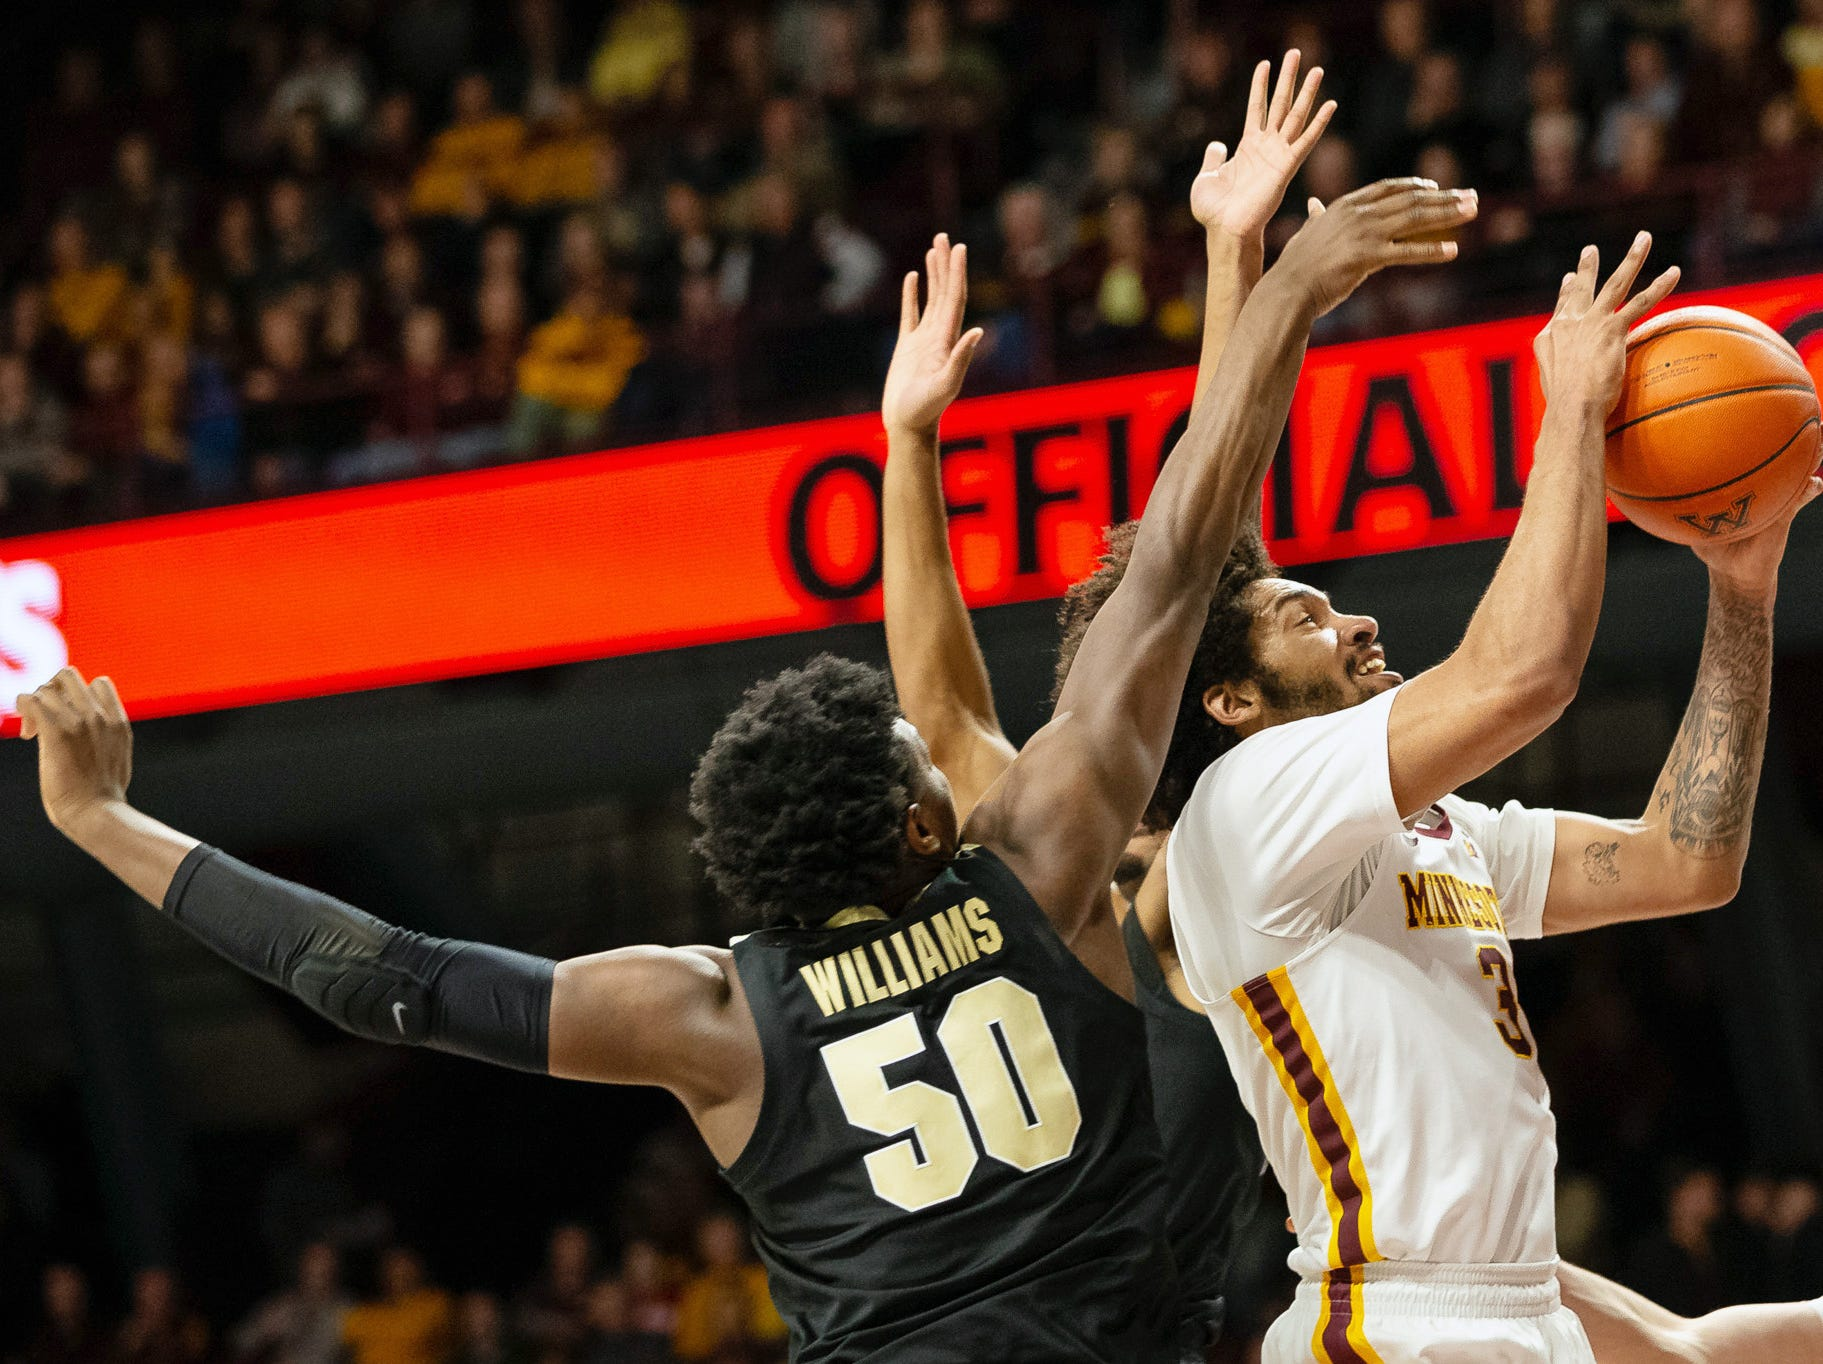 Mar 5, 2019; Minneapolis, MN, USA; Minnesota Gophers forward Jordan Murphy (3) drives to the basket as Purdue Boilermakers forward Trevion Williams (50) defends during the first half at Williams Arena. Mandatory Credit: Harrison Barden-USA TODAY Sports